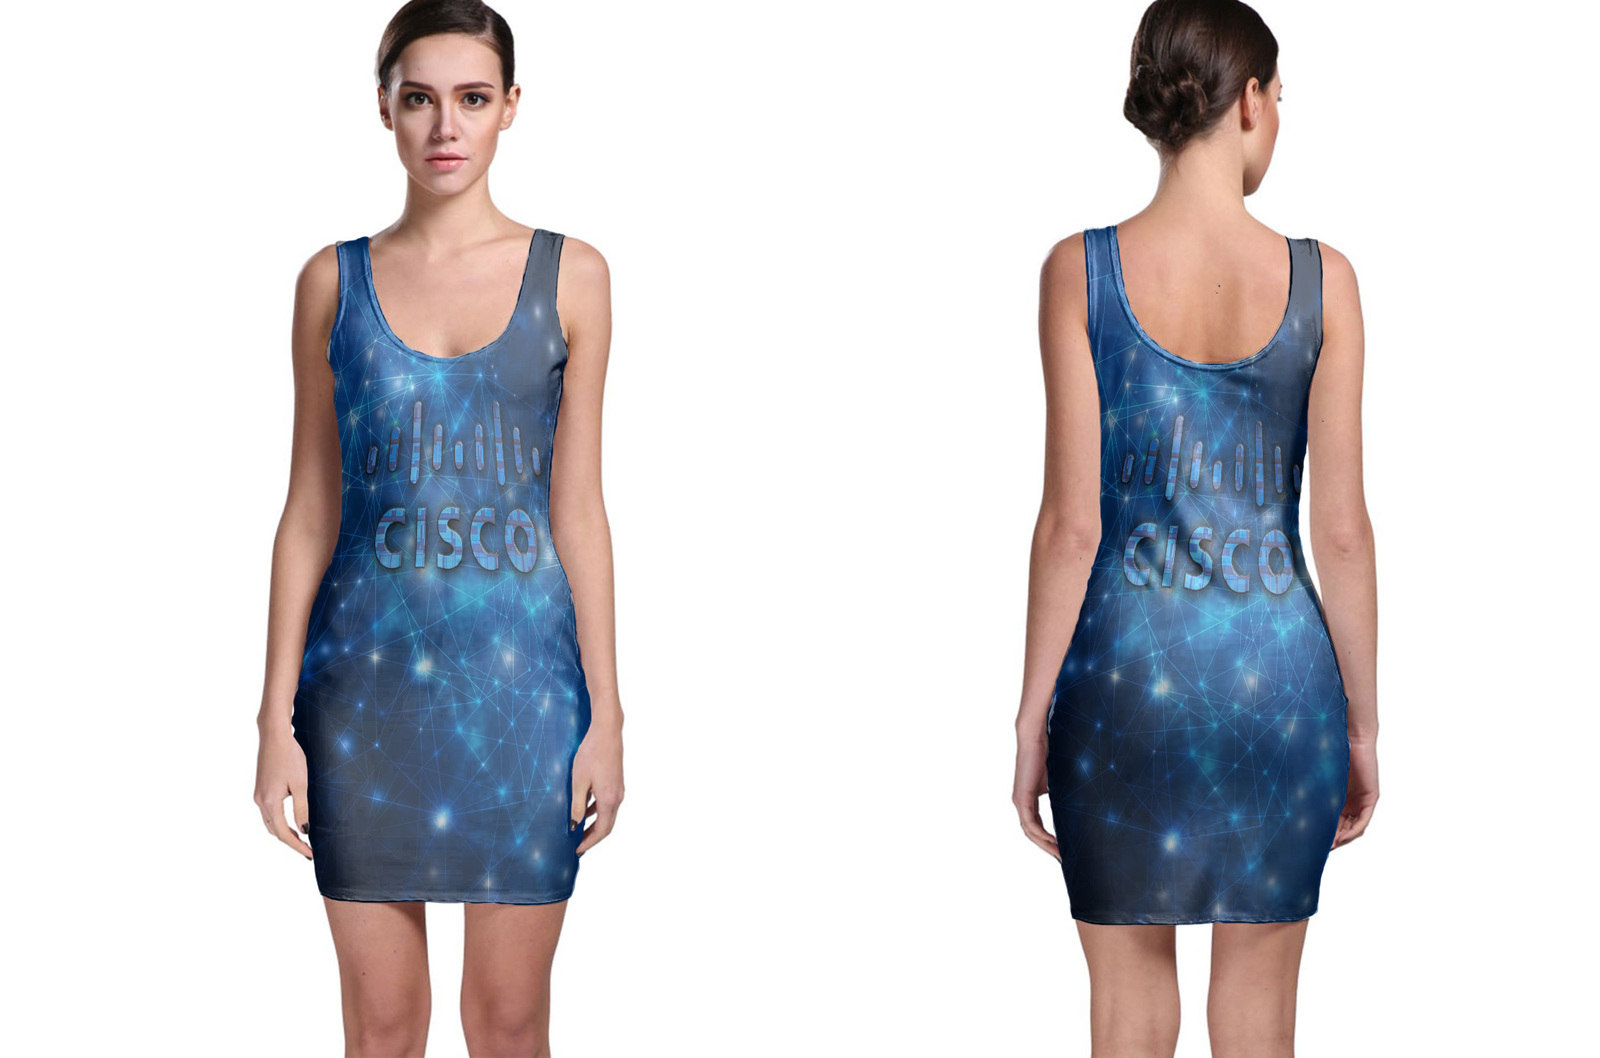 cisco Bodycon Dress